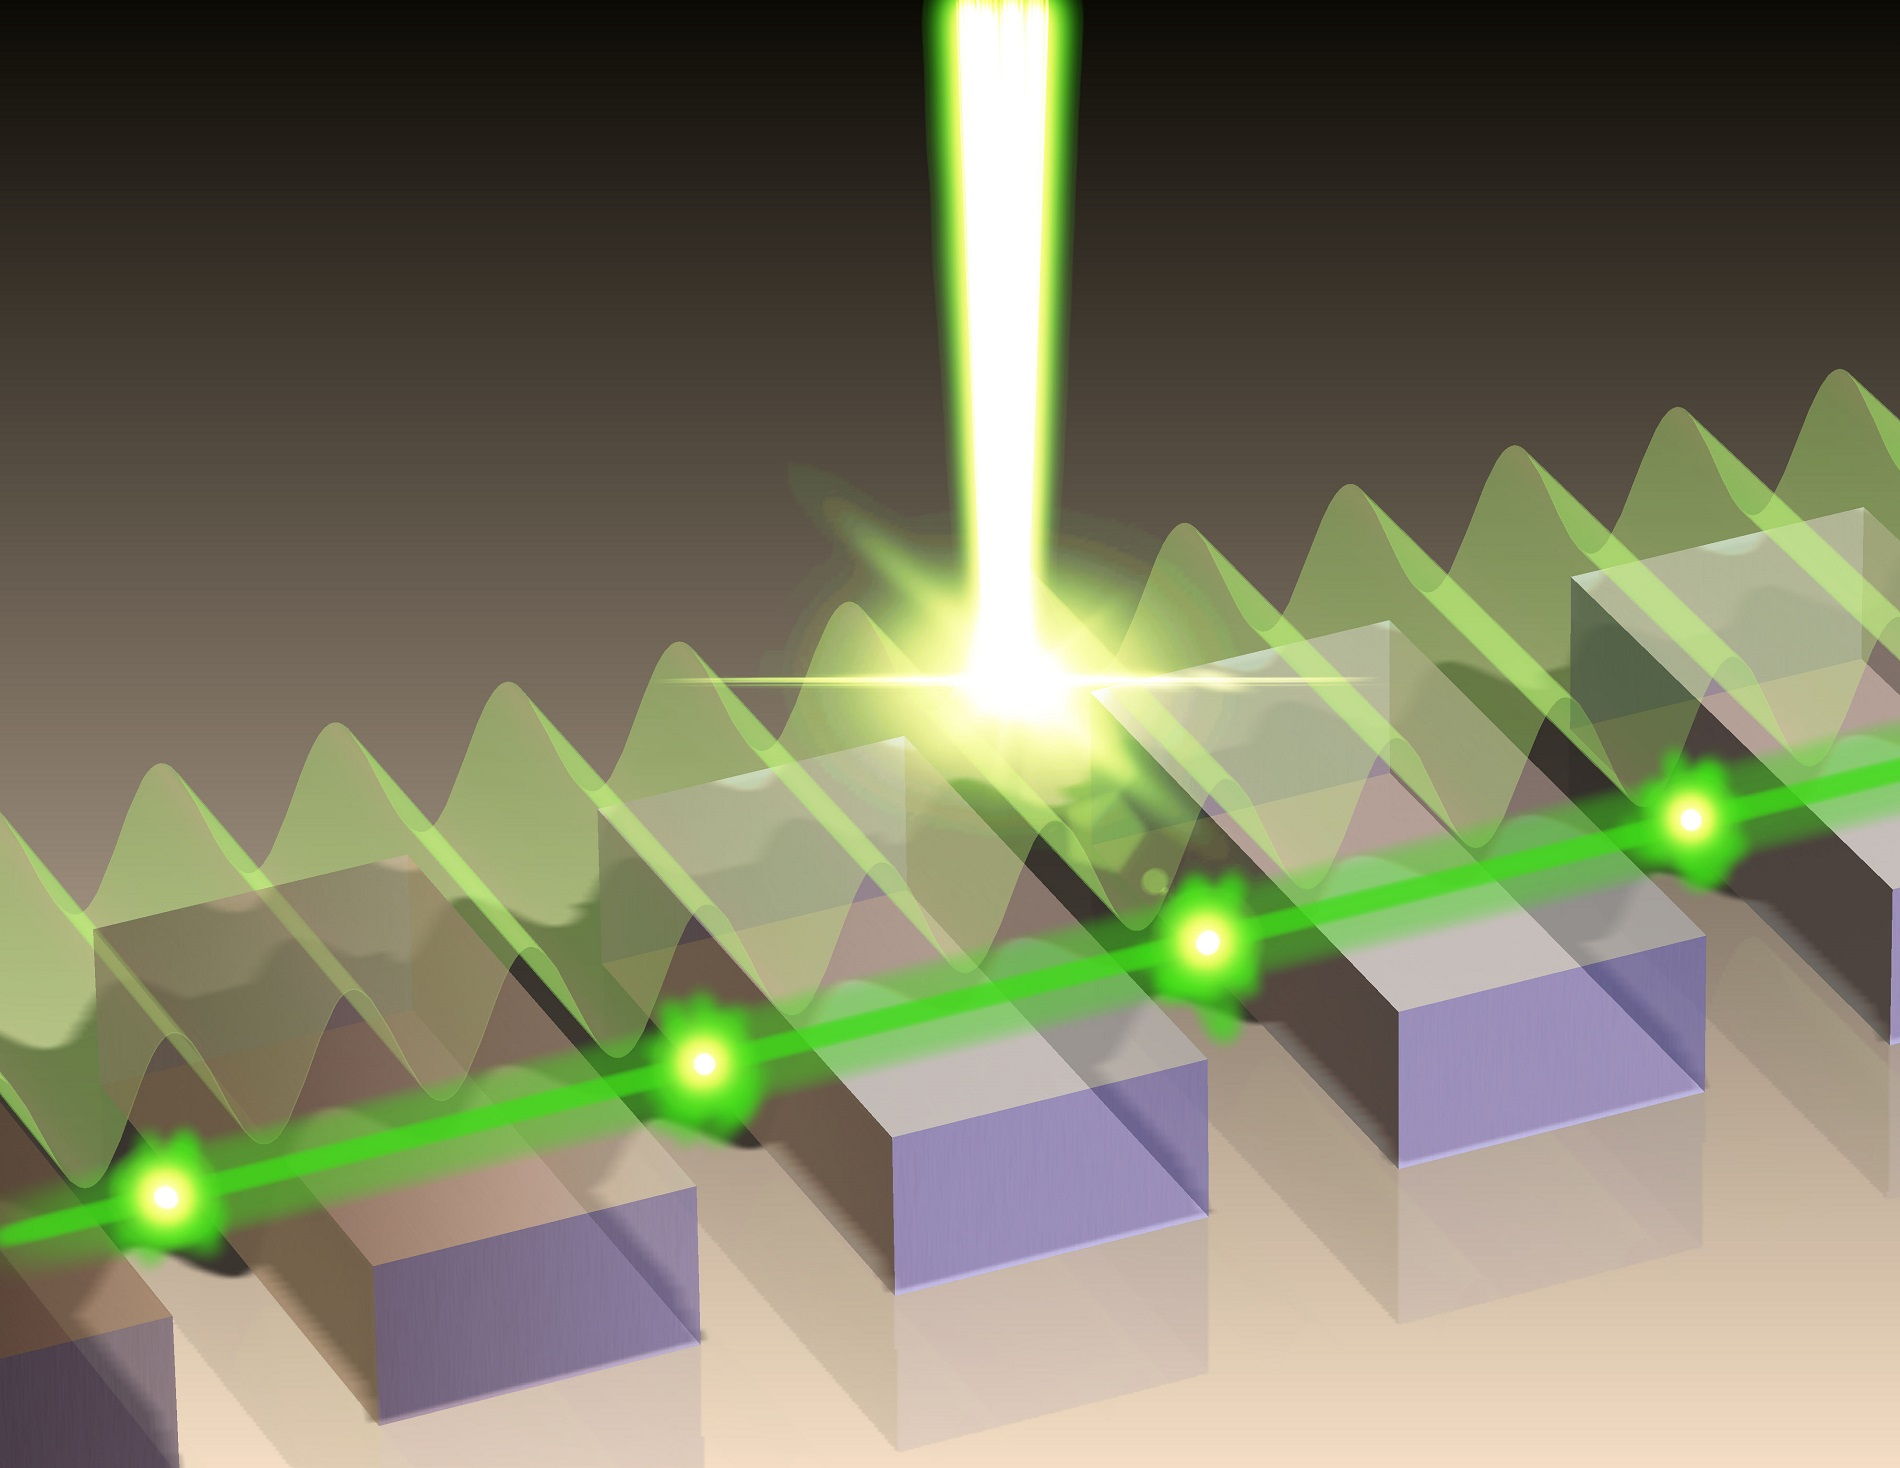 A phase-locking scheme for plasmonic lasers is developed in which traveling surface-waves longitudinally couple several metallic microcavities in a surface-emitting laser array